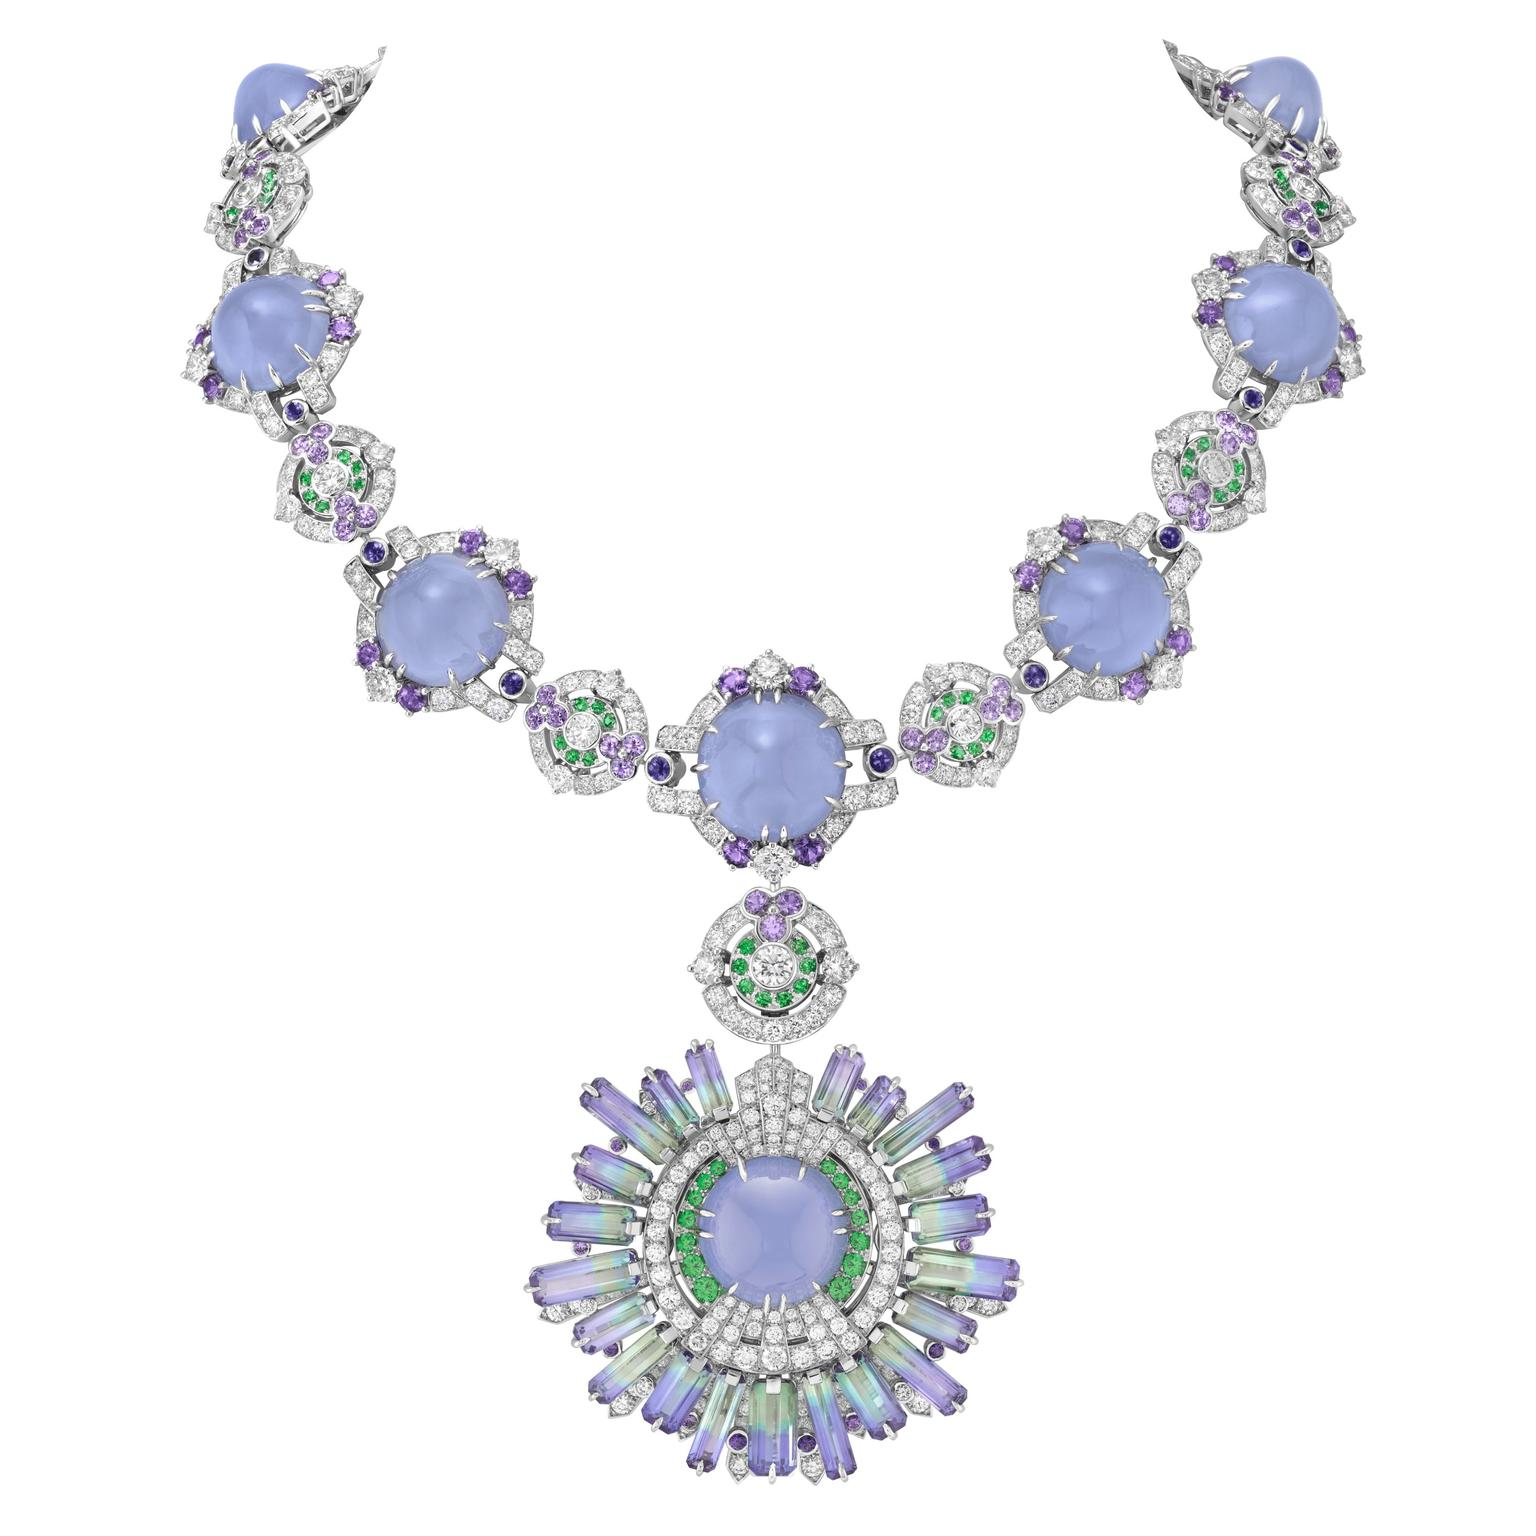 Céphéide necklace by Van Cleef & Arpels